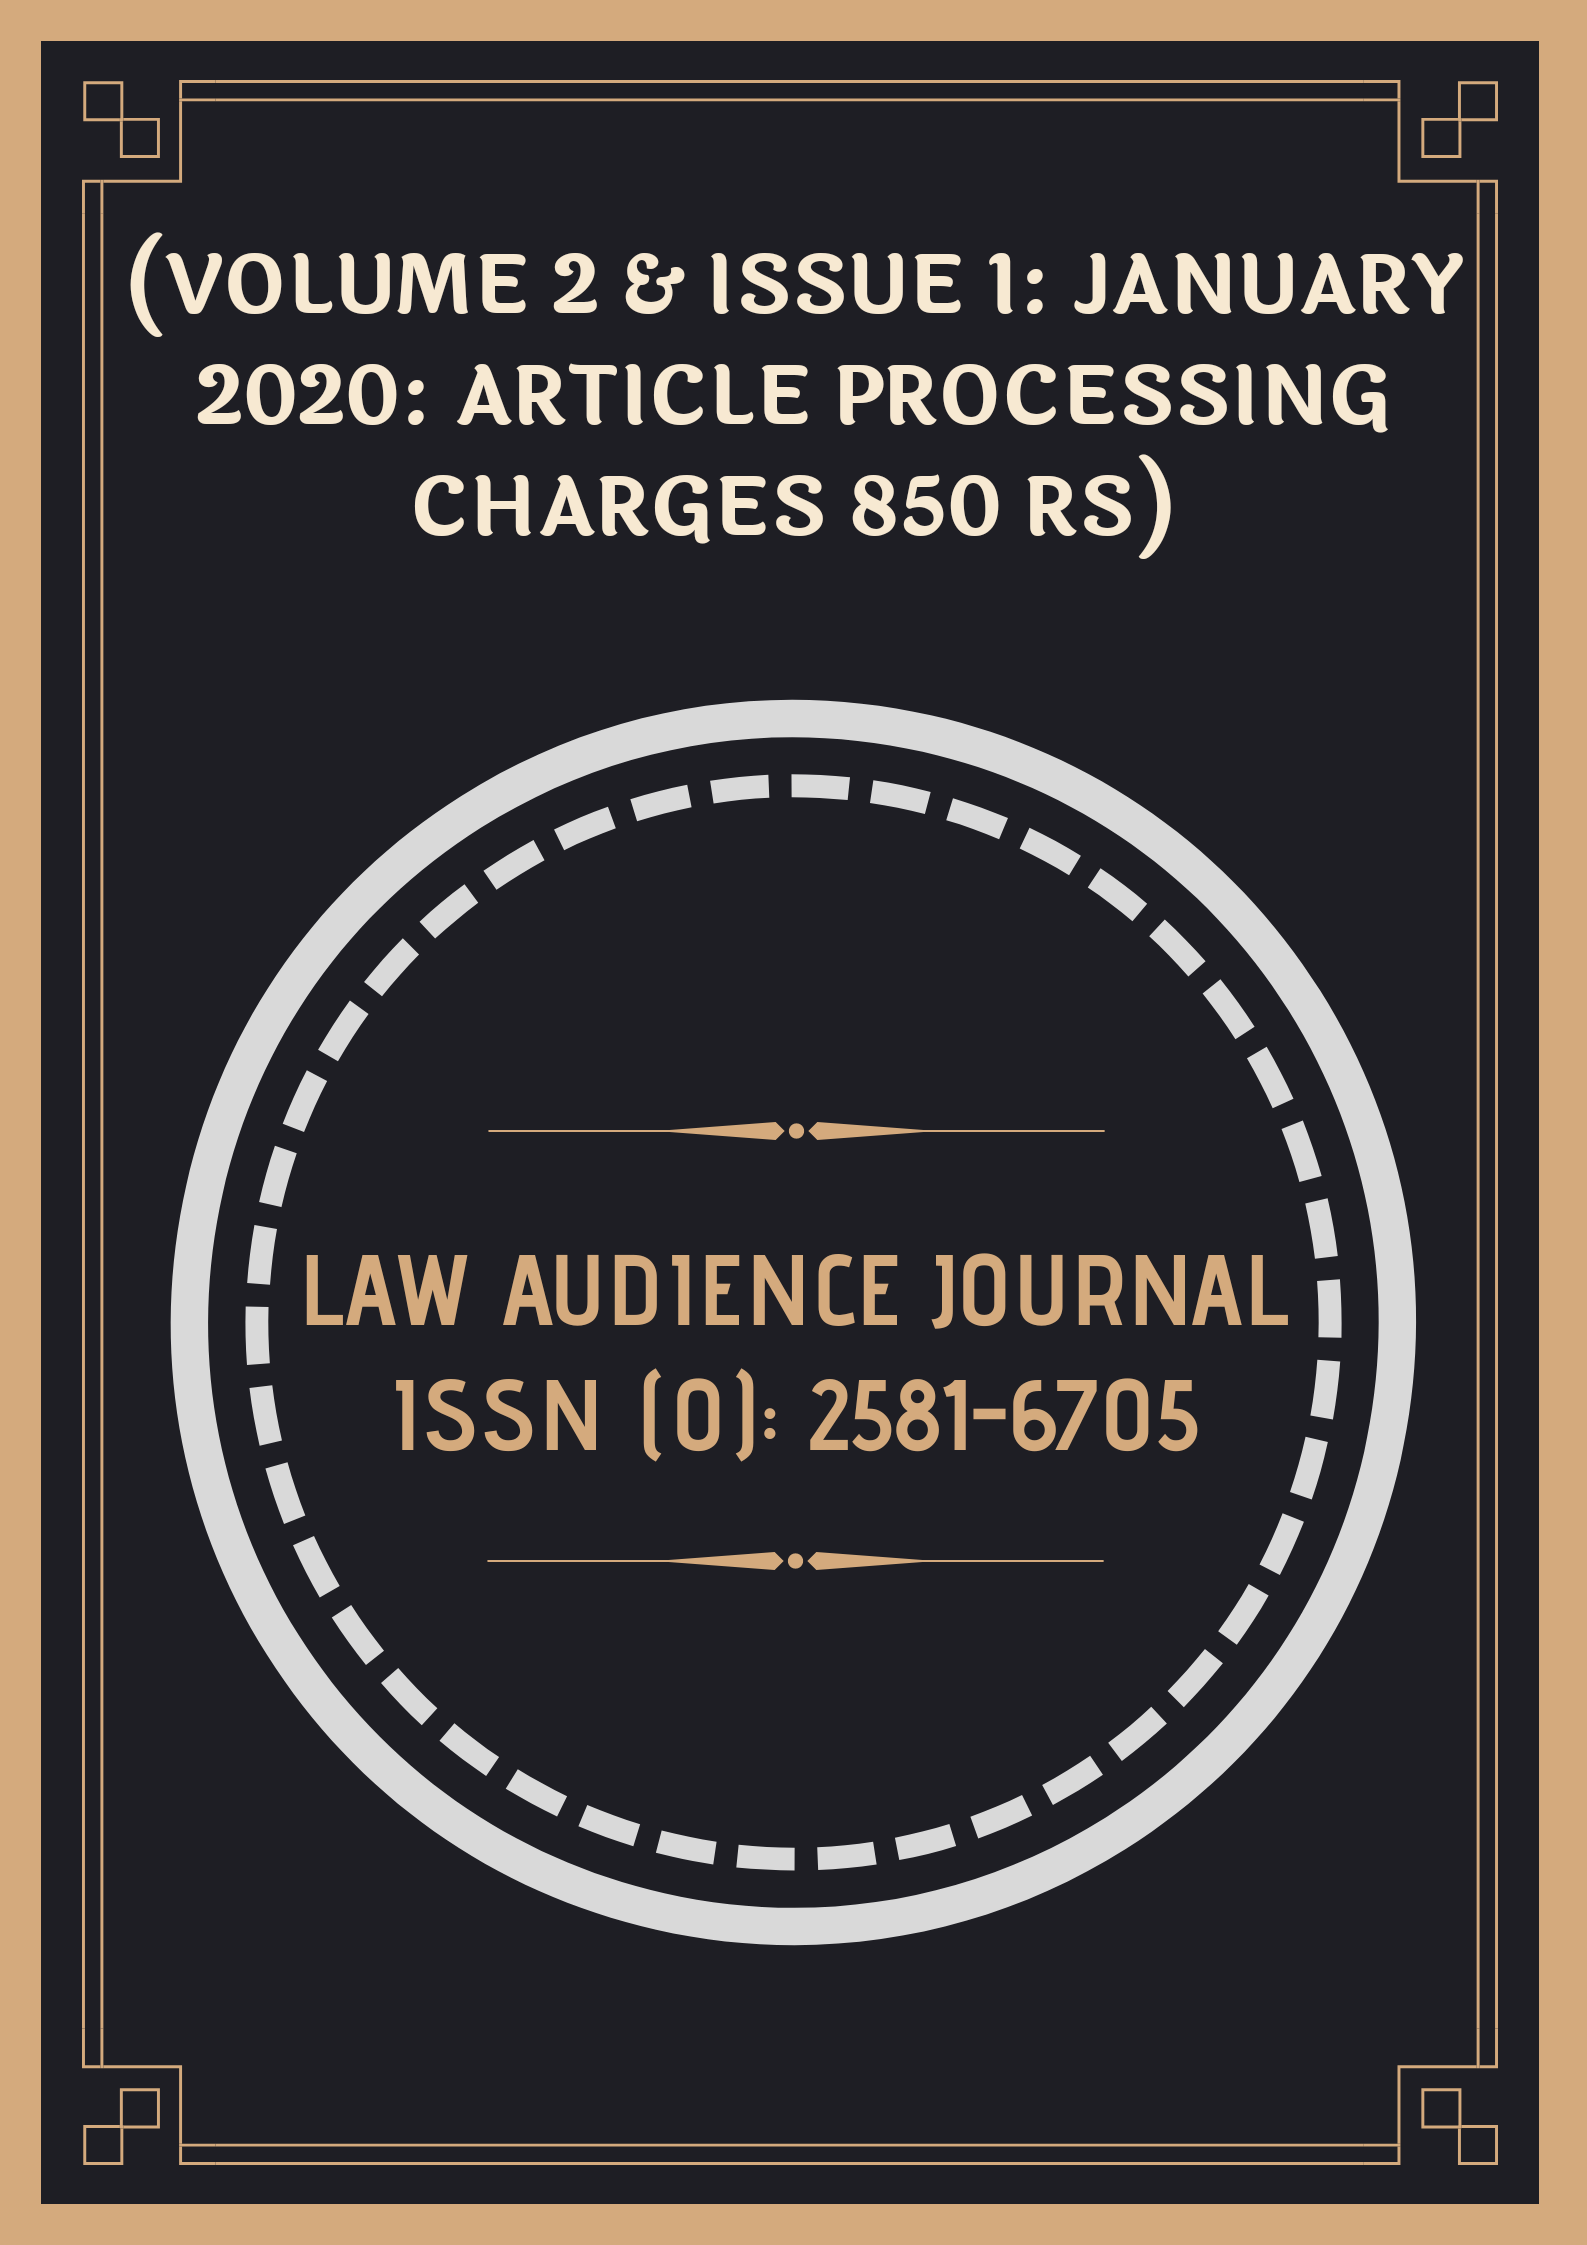 Law Audience Journal